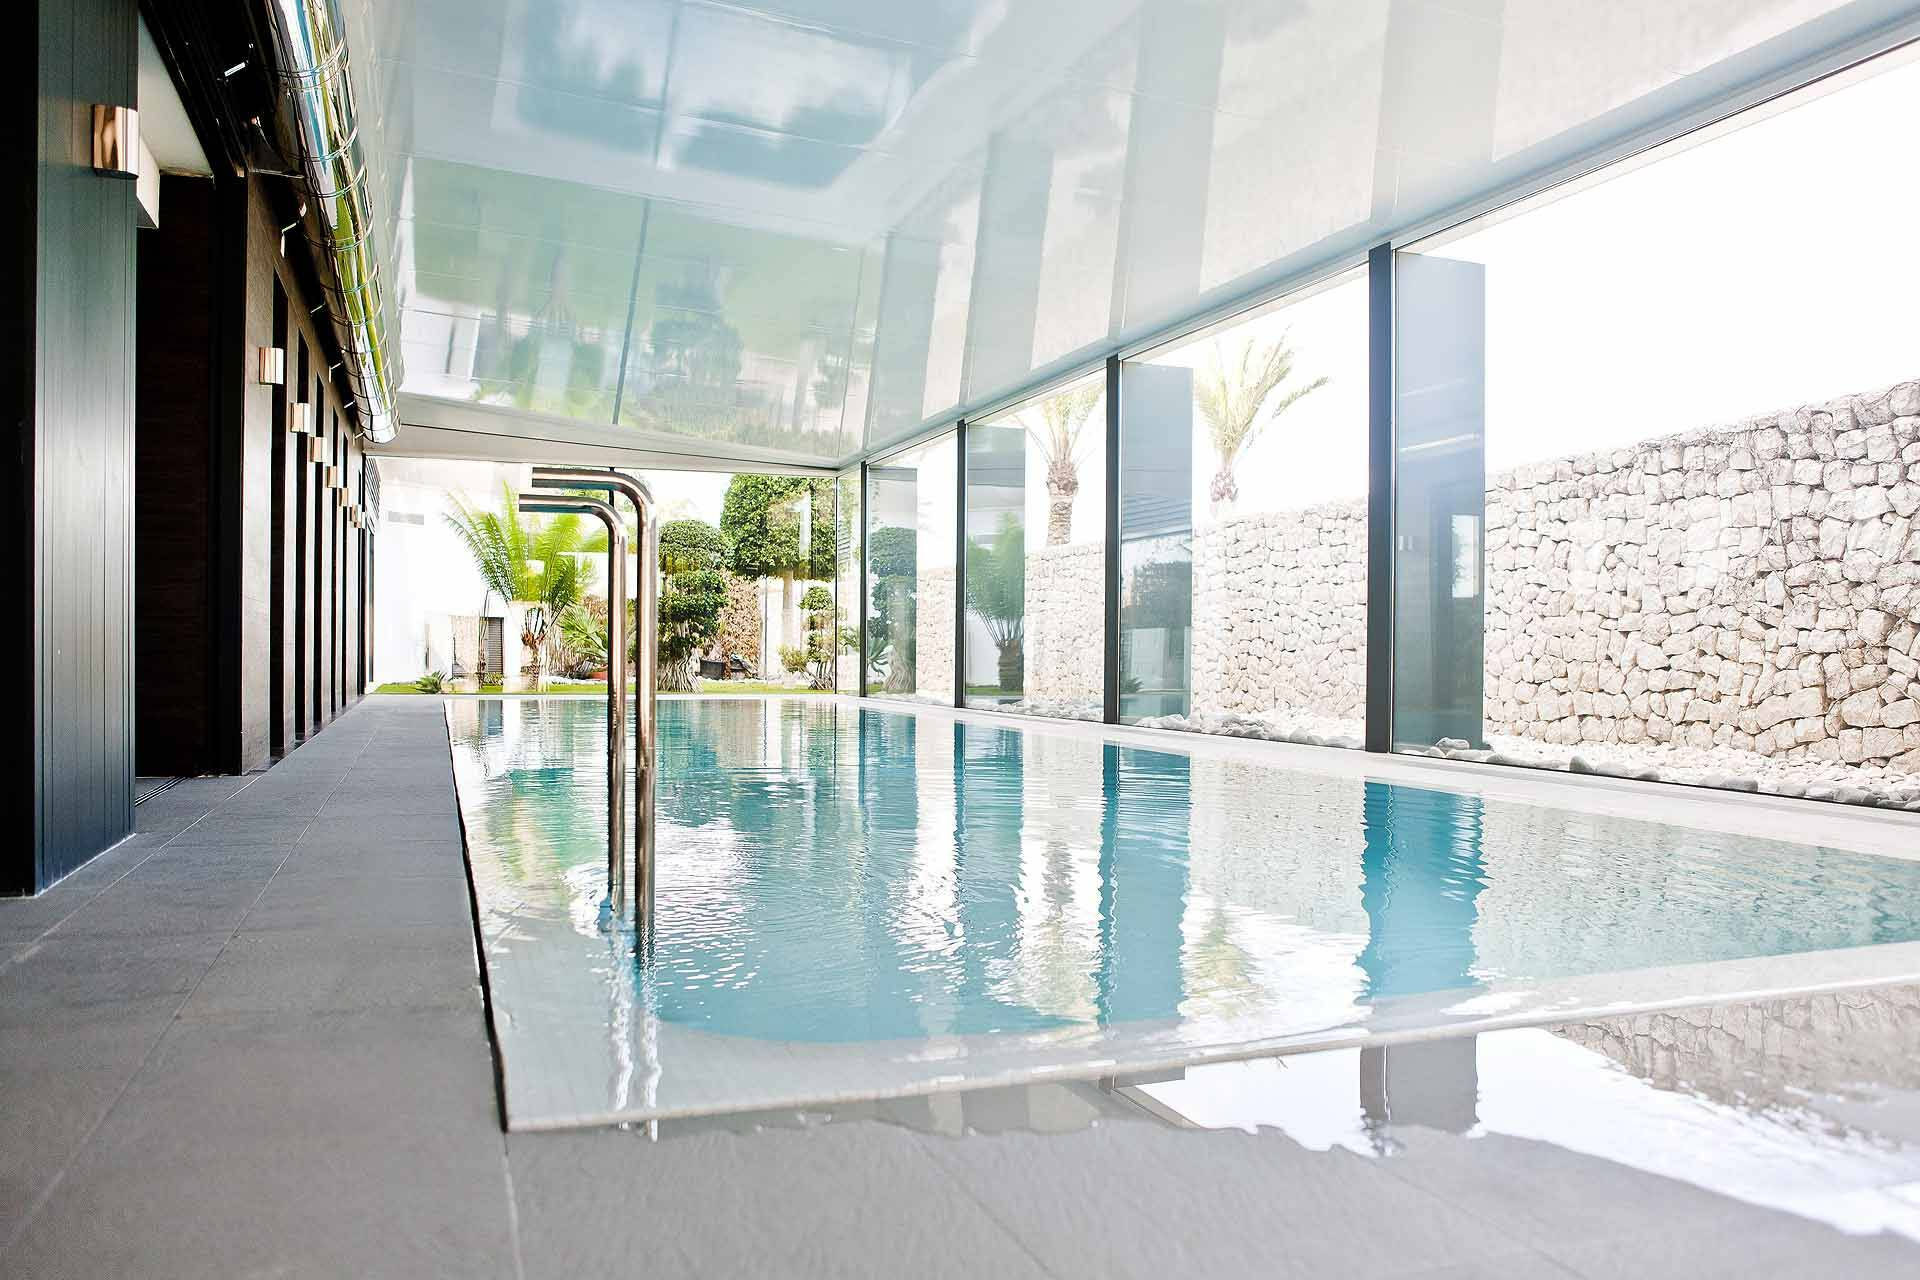 Sha Wellness Piscine interieure Sejour AlicanteJPG